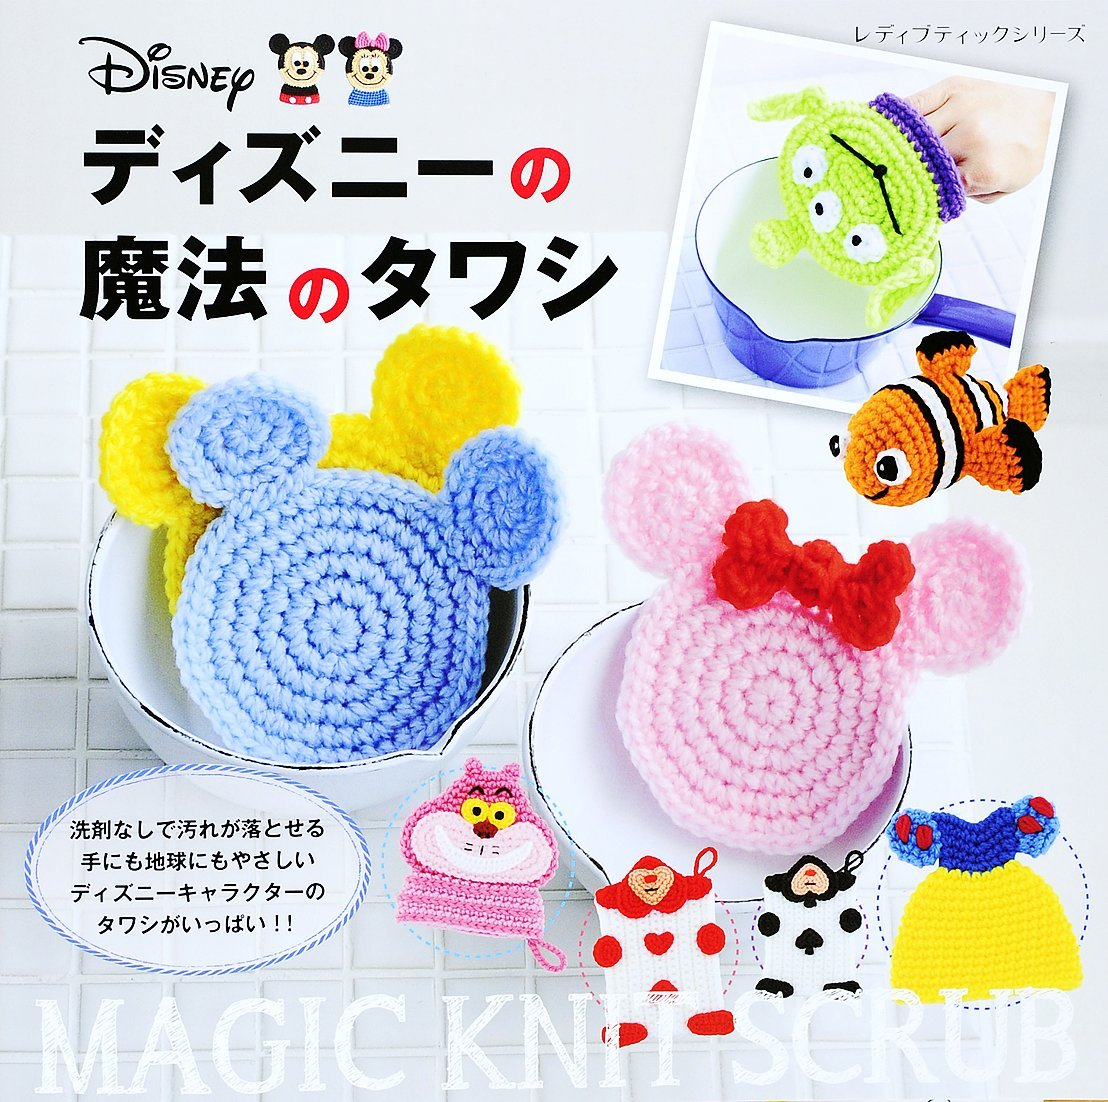 Disney magic sponge